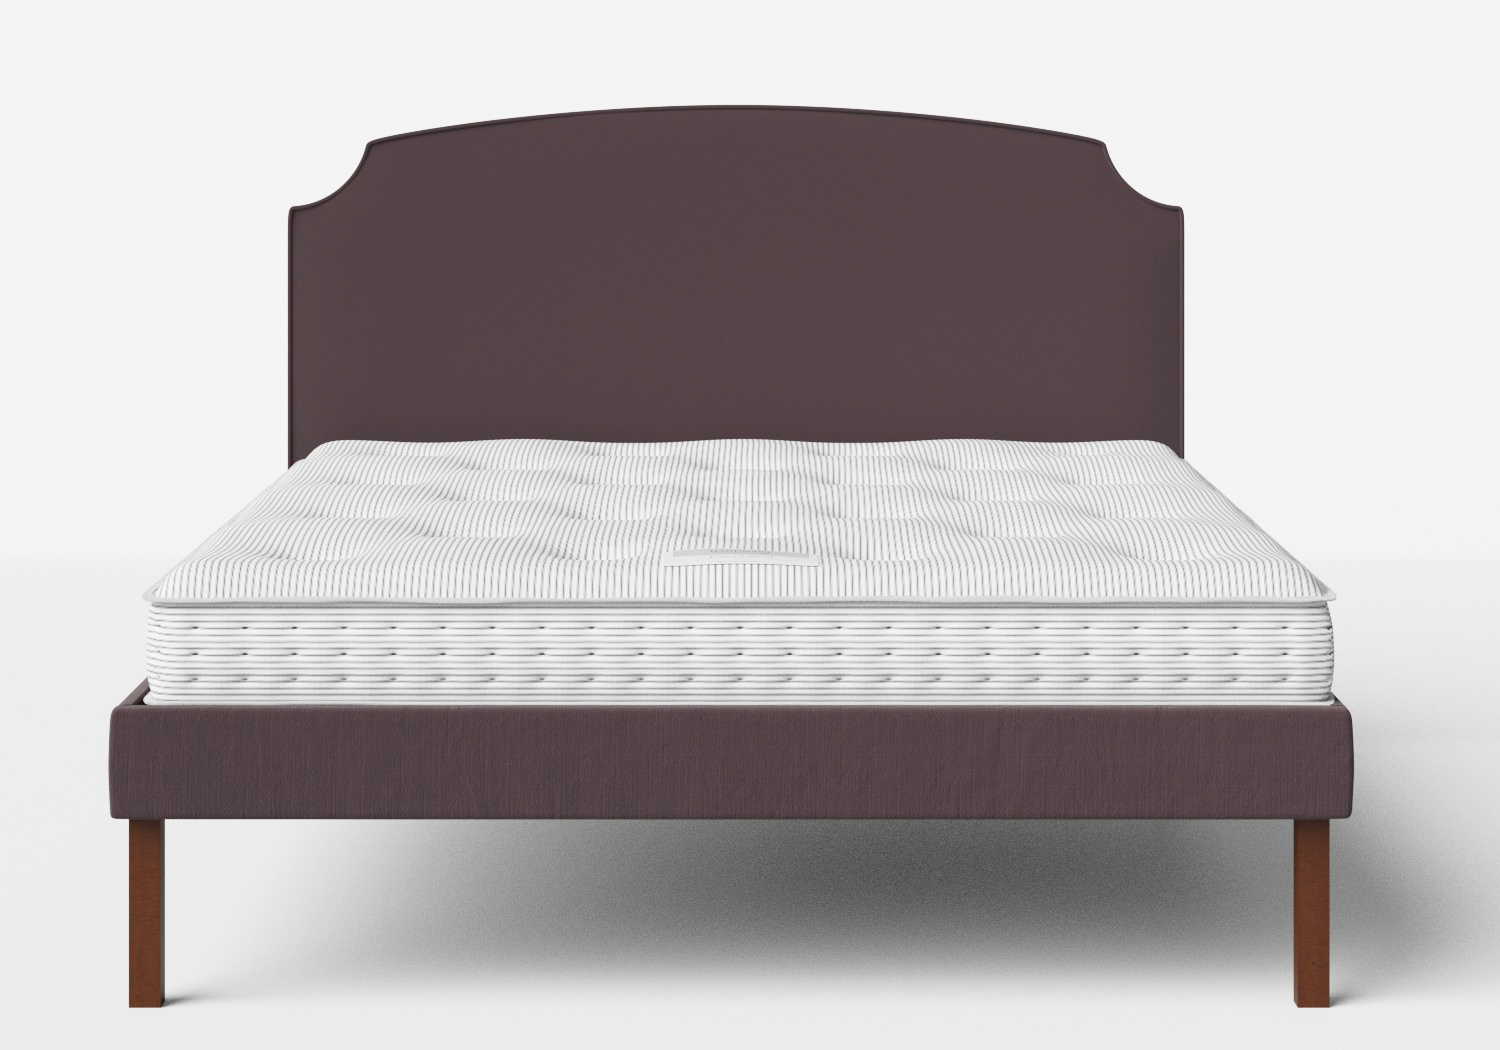 Kobe Upholstered Bed in Aubergine fabric with piping shown with Juno 1 mattress